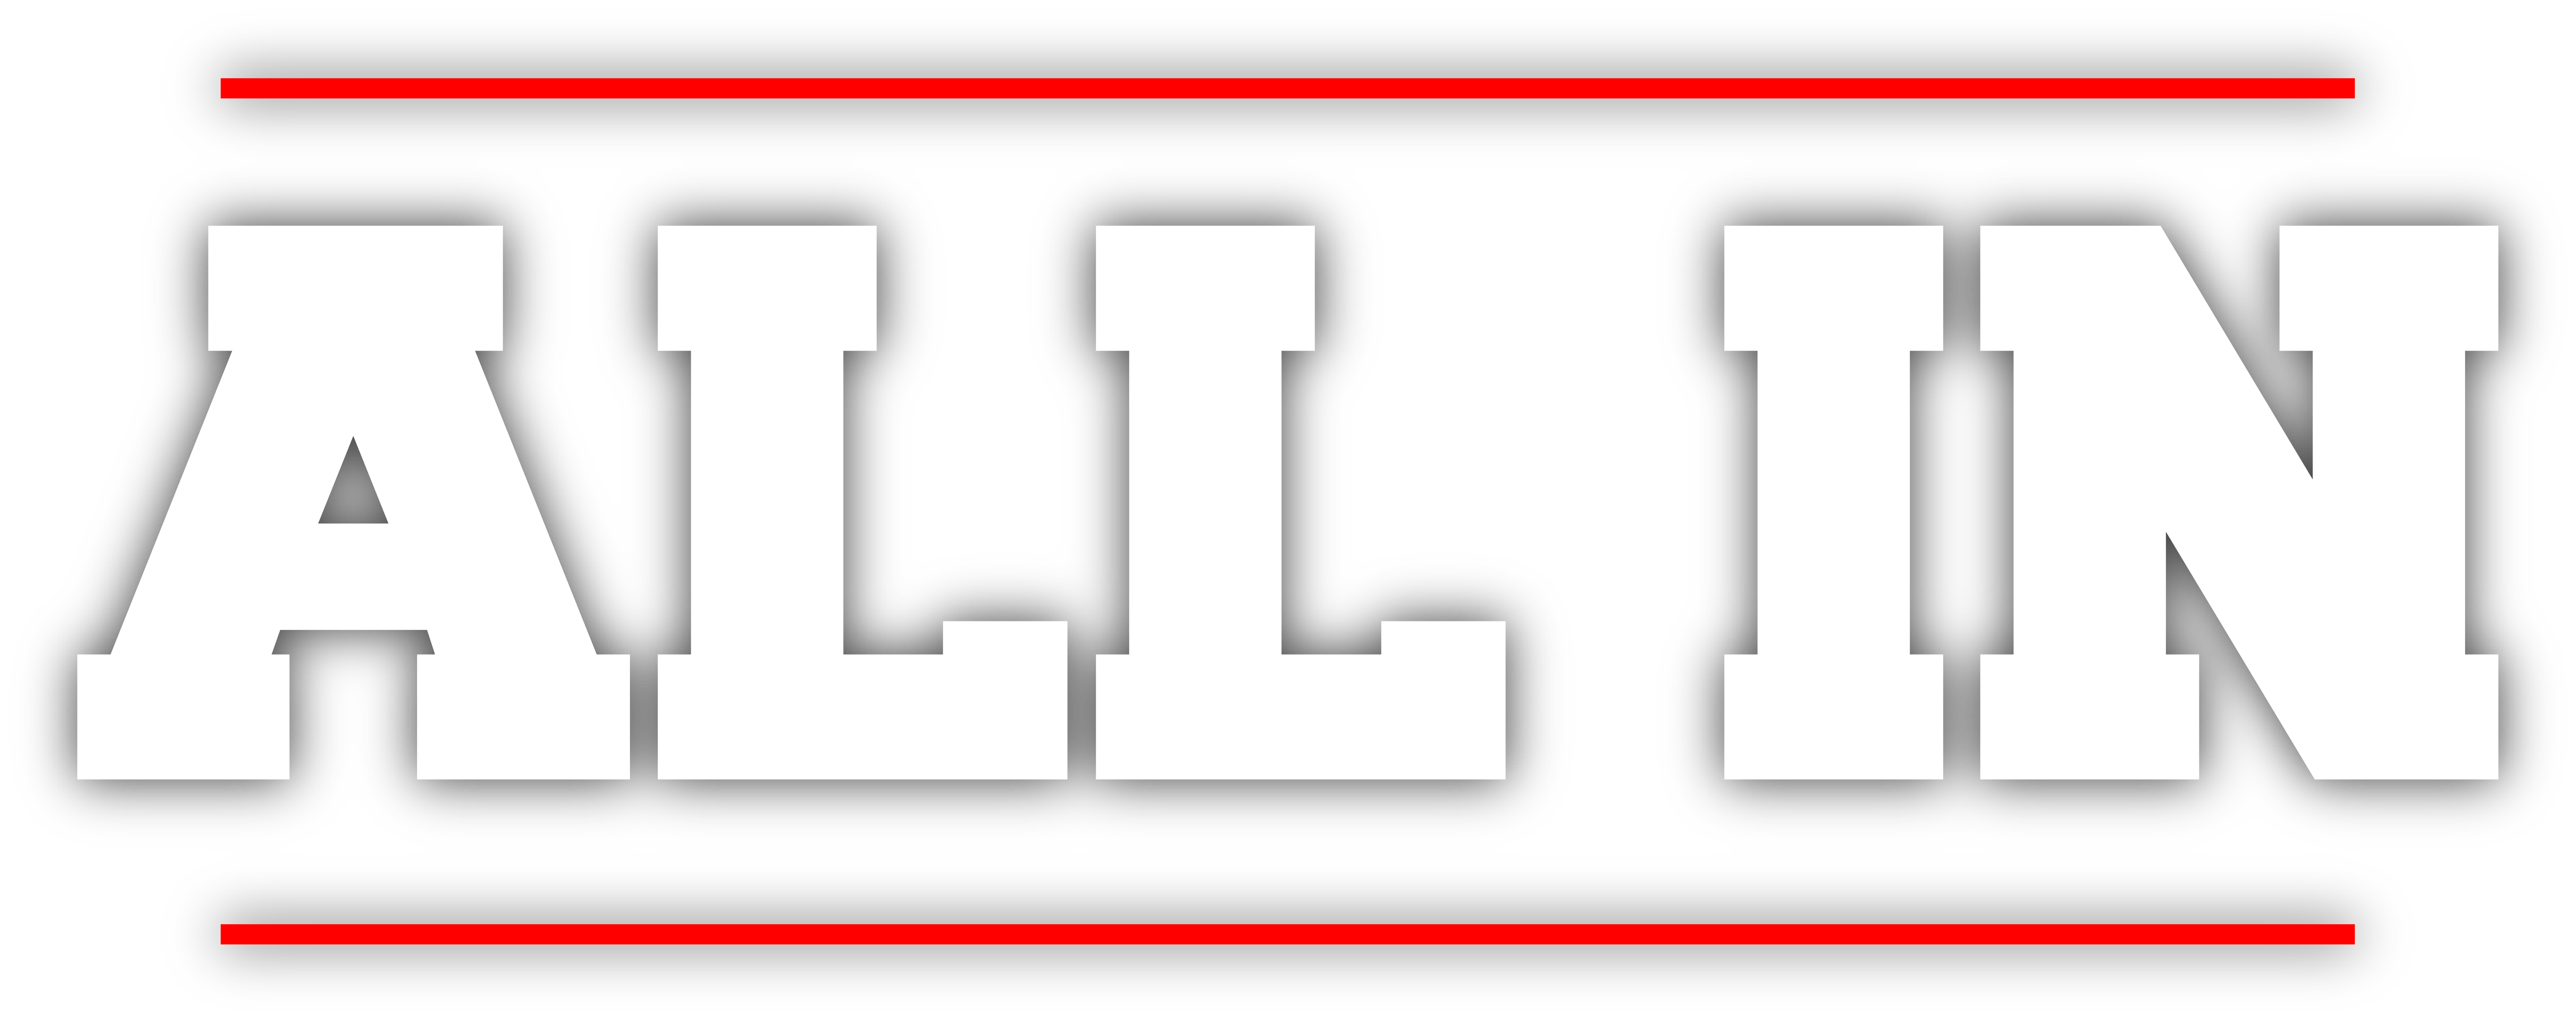 All In (professional wrestling event)